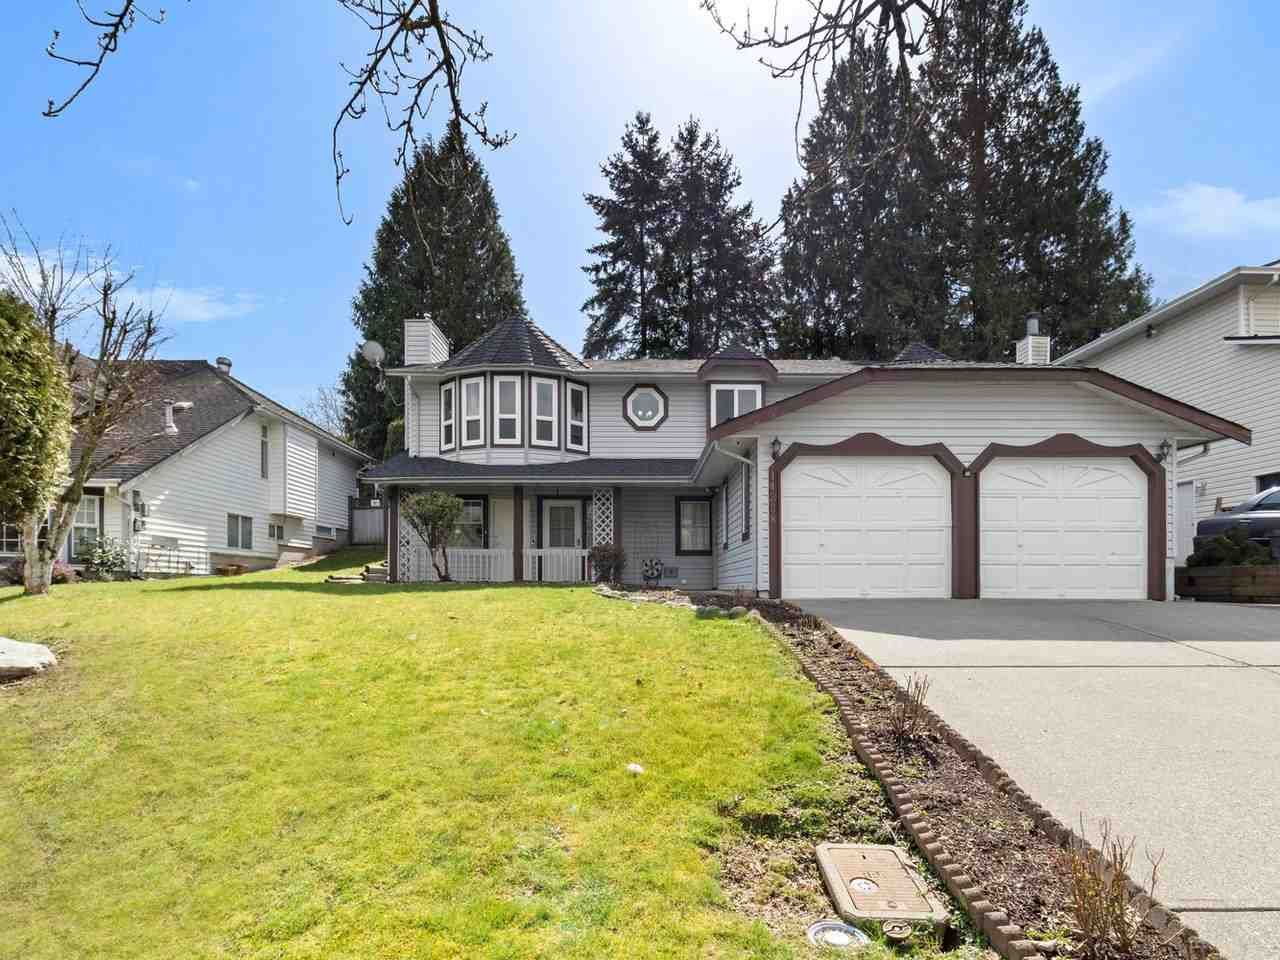 Main Photo: 14338 78A Avenue in Surrey: East Newton House for sale : MLS®# R2558341